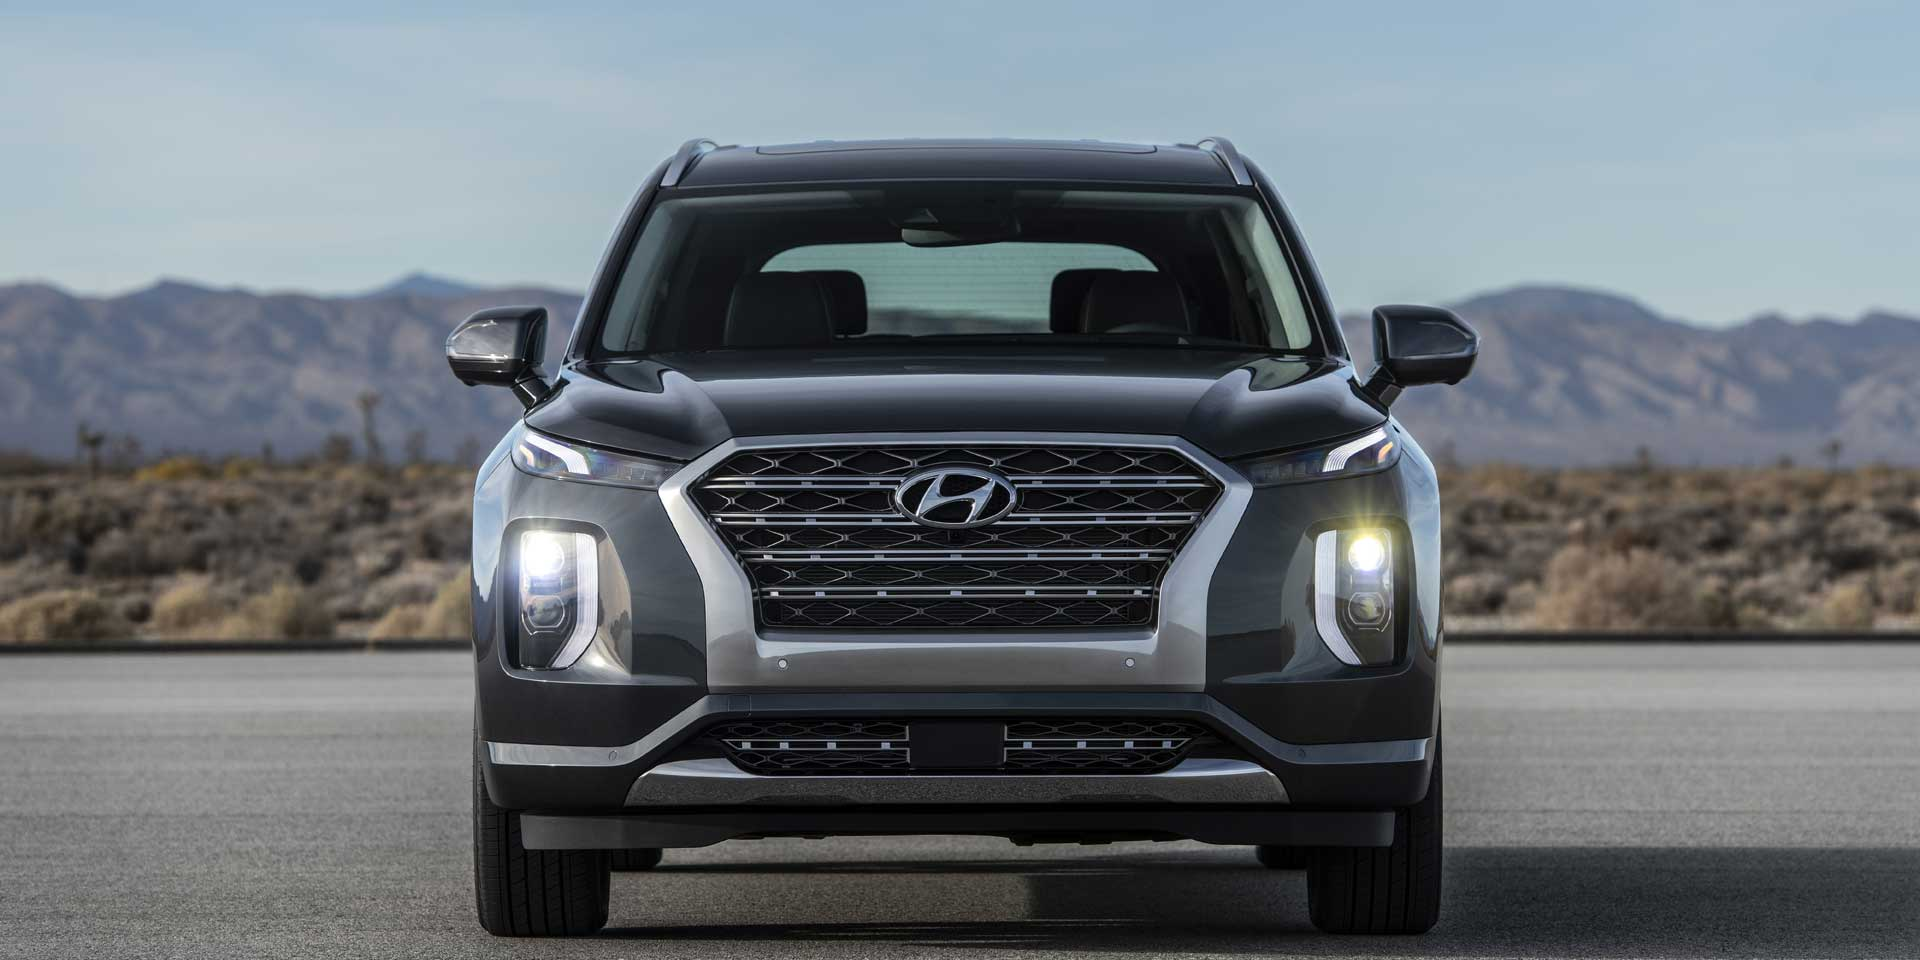 2020 - Hyundai - Palisade - Vehicles on Display | Chicago ...